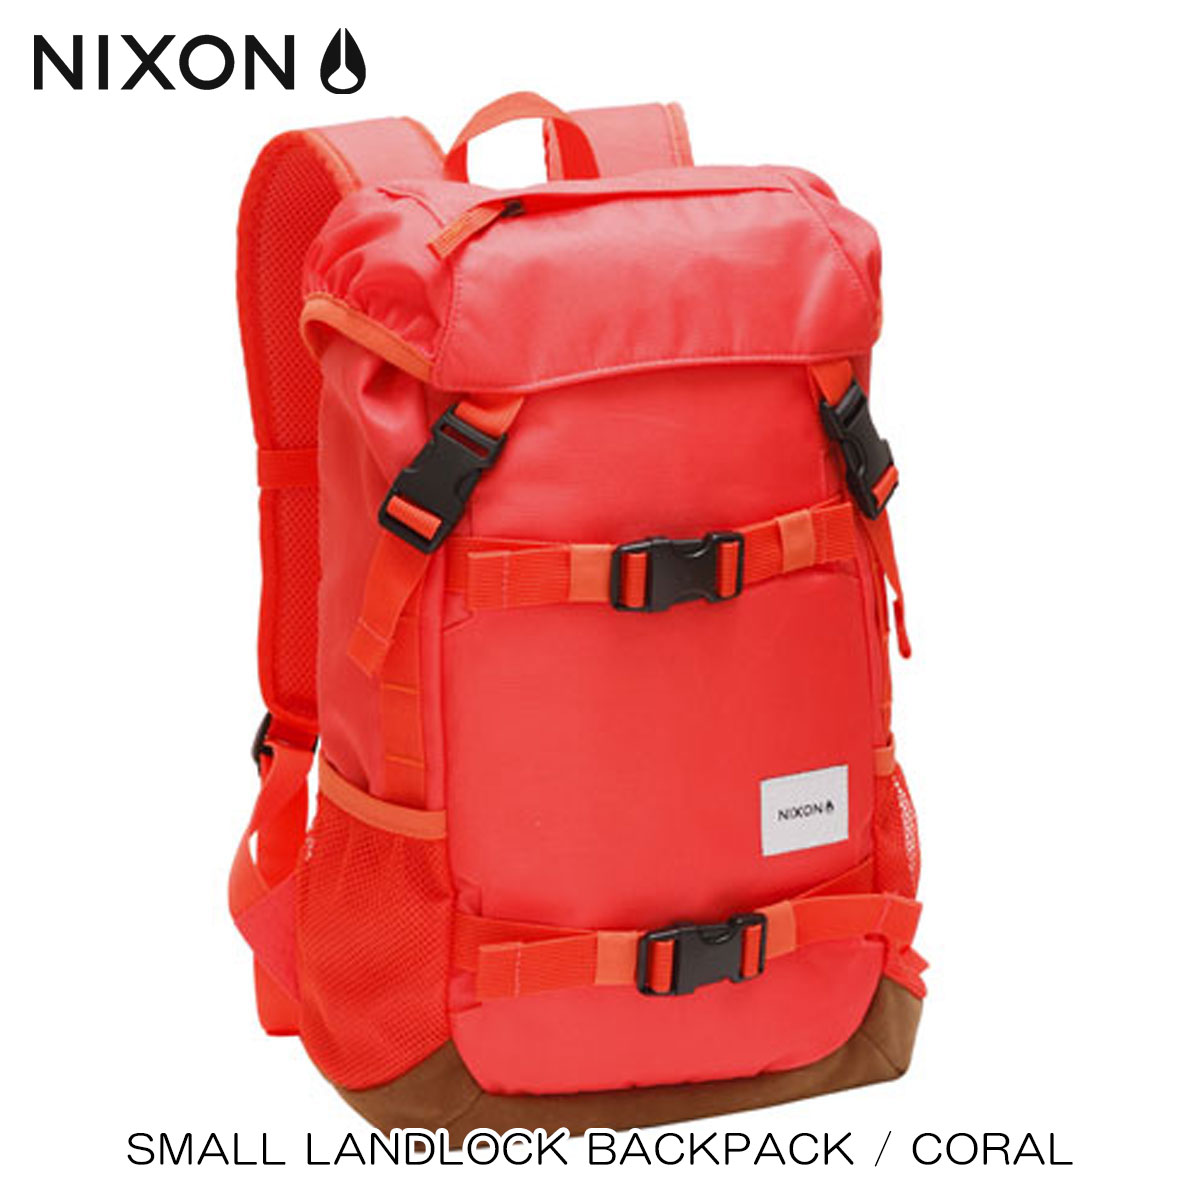 25%OFFセール 【販売期間 9/22 9:00〜9/26 9:59】 ニクソン NIXON 正規販売店 バッグ Small Landlock Backpack CORAL RED NC2256685-00 D15S25